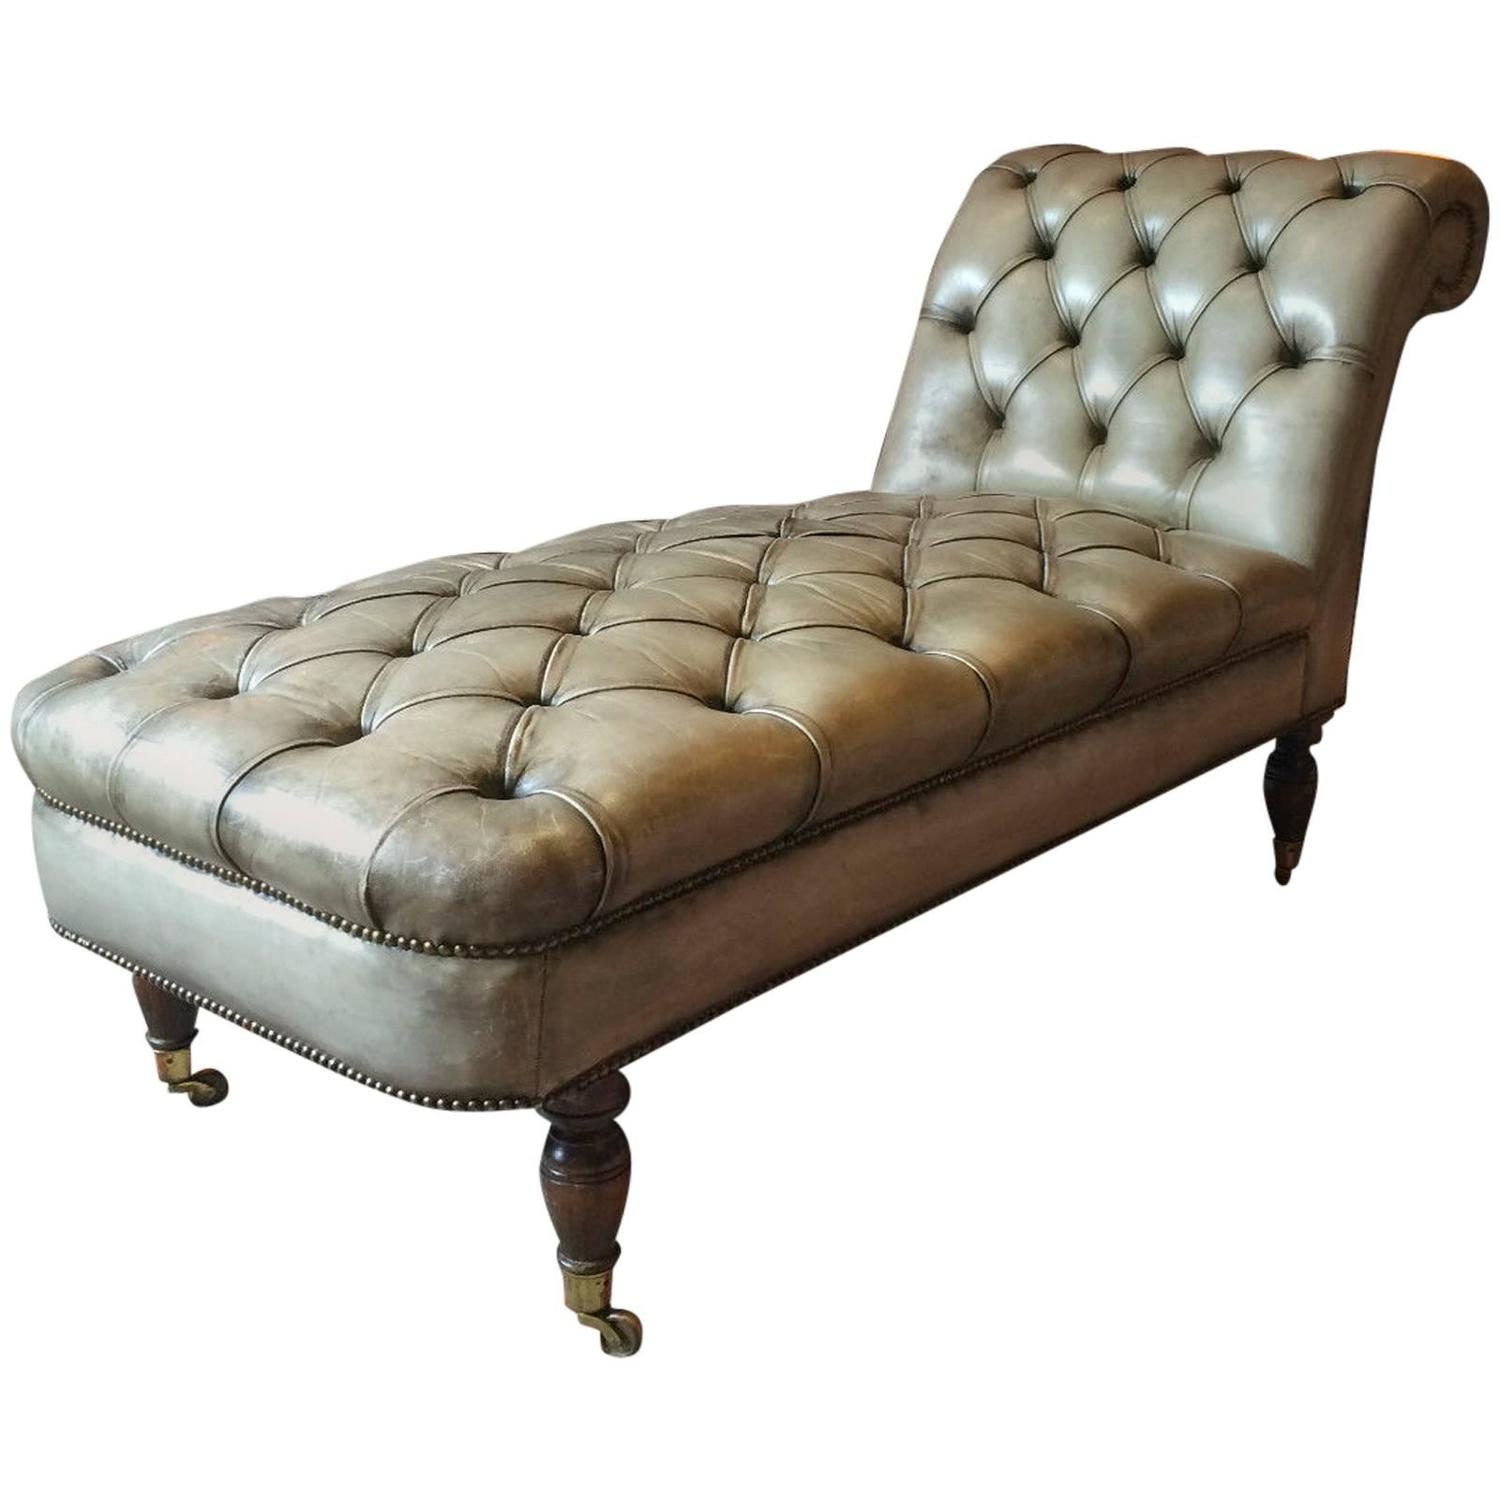 antique style chesterfield chaise longue leather button back in grey green at 1stdibs. Black Bedroom Furniture Sets. Home Design Ideas